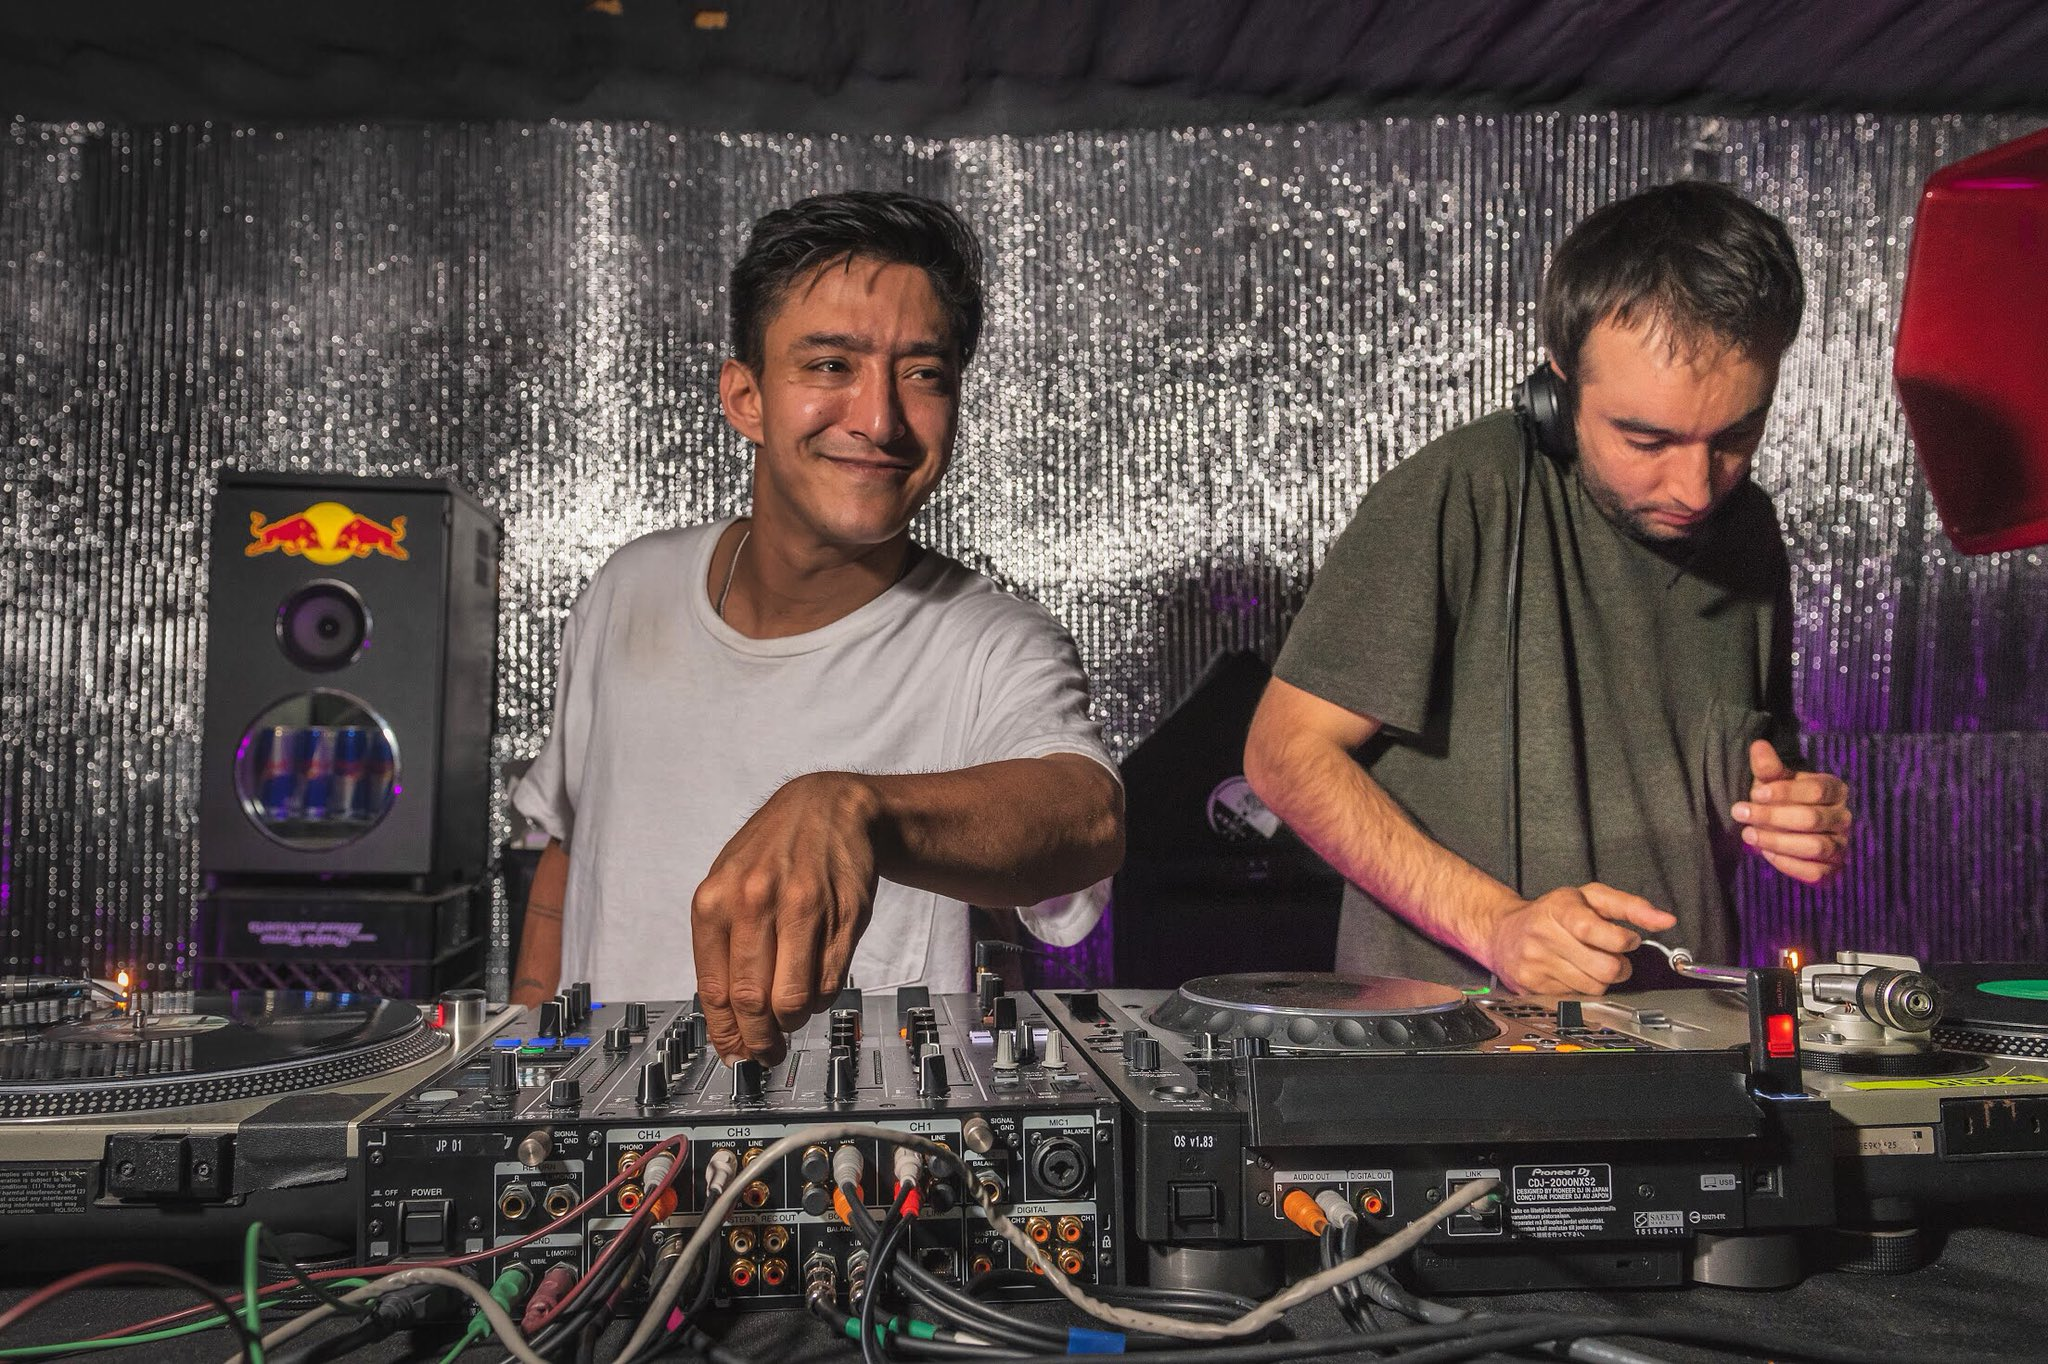 Pablo R. Ruiz b2b @__SHIGETO at the @ghostly @MovementDetroit official opening party, last Friday  📷 @funkytreetown https://t.co/uaof2m6FkO